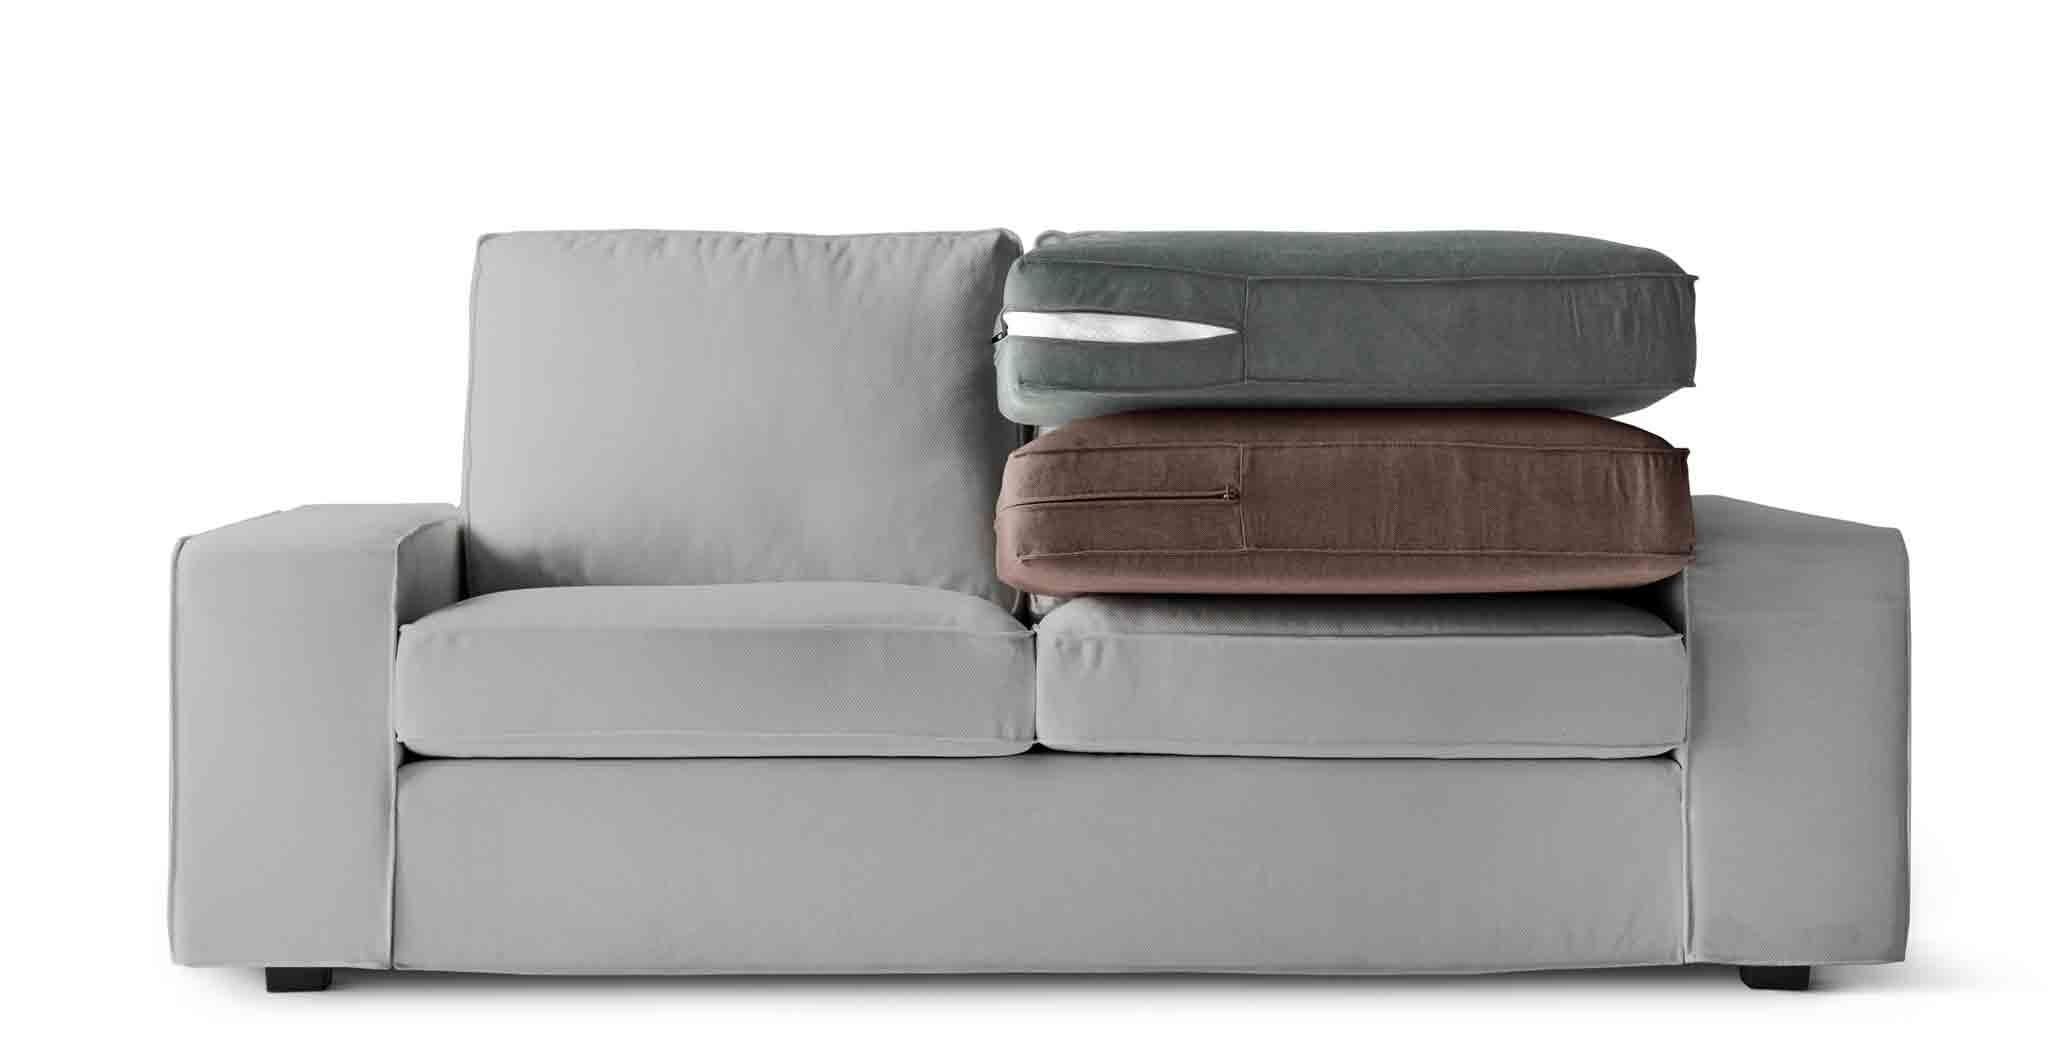 sectional sofas with removable slipcovers smart sofa pl 20 43 choices of cover ideas